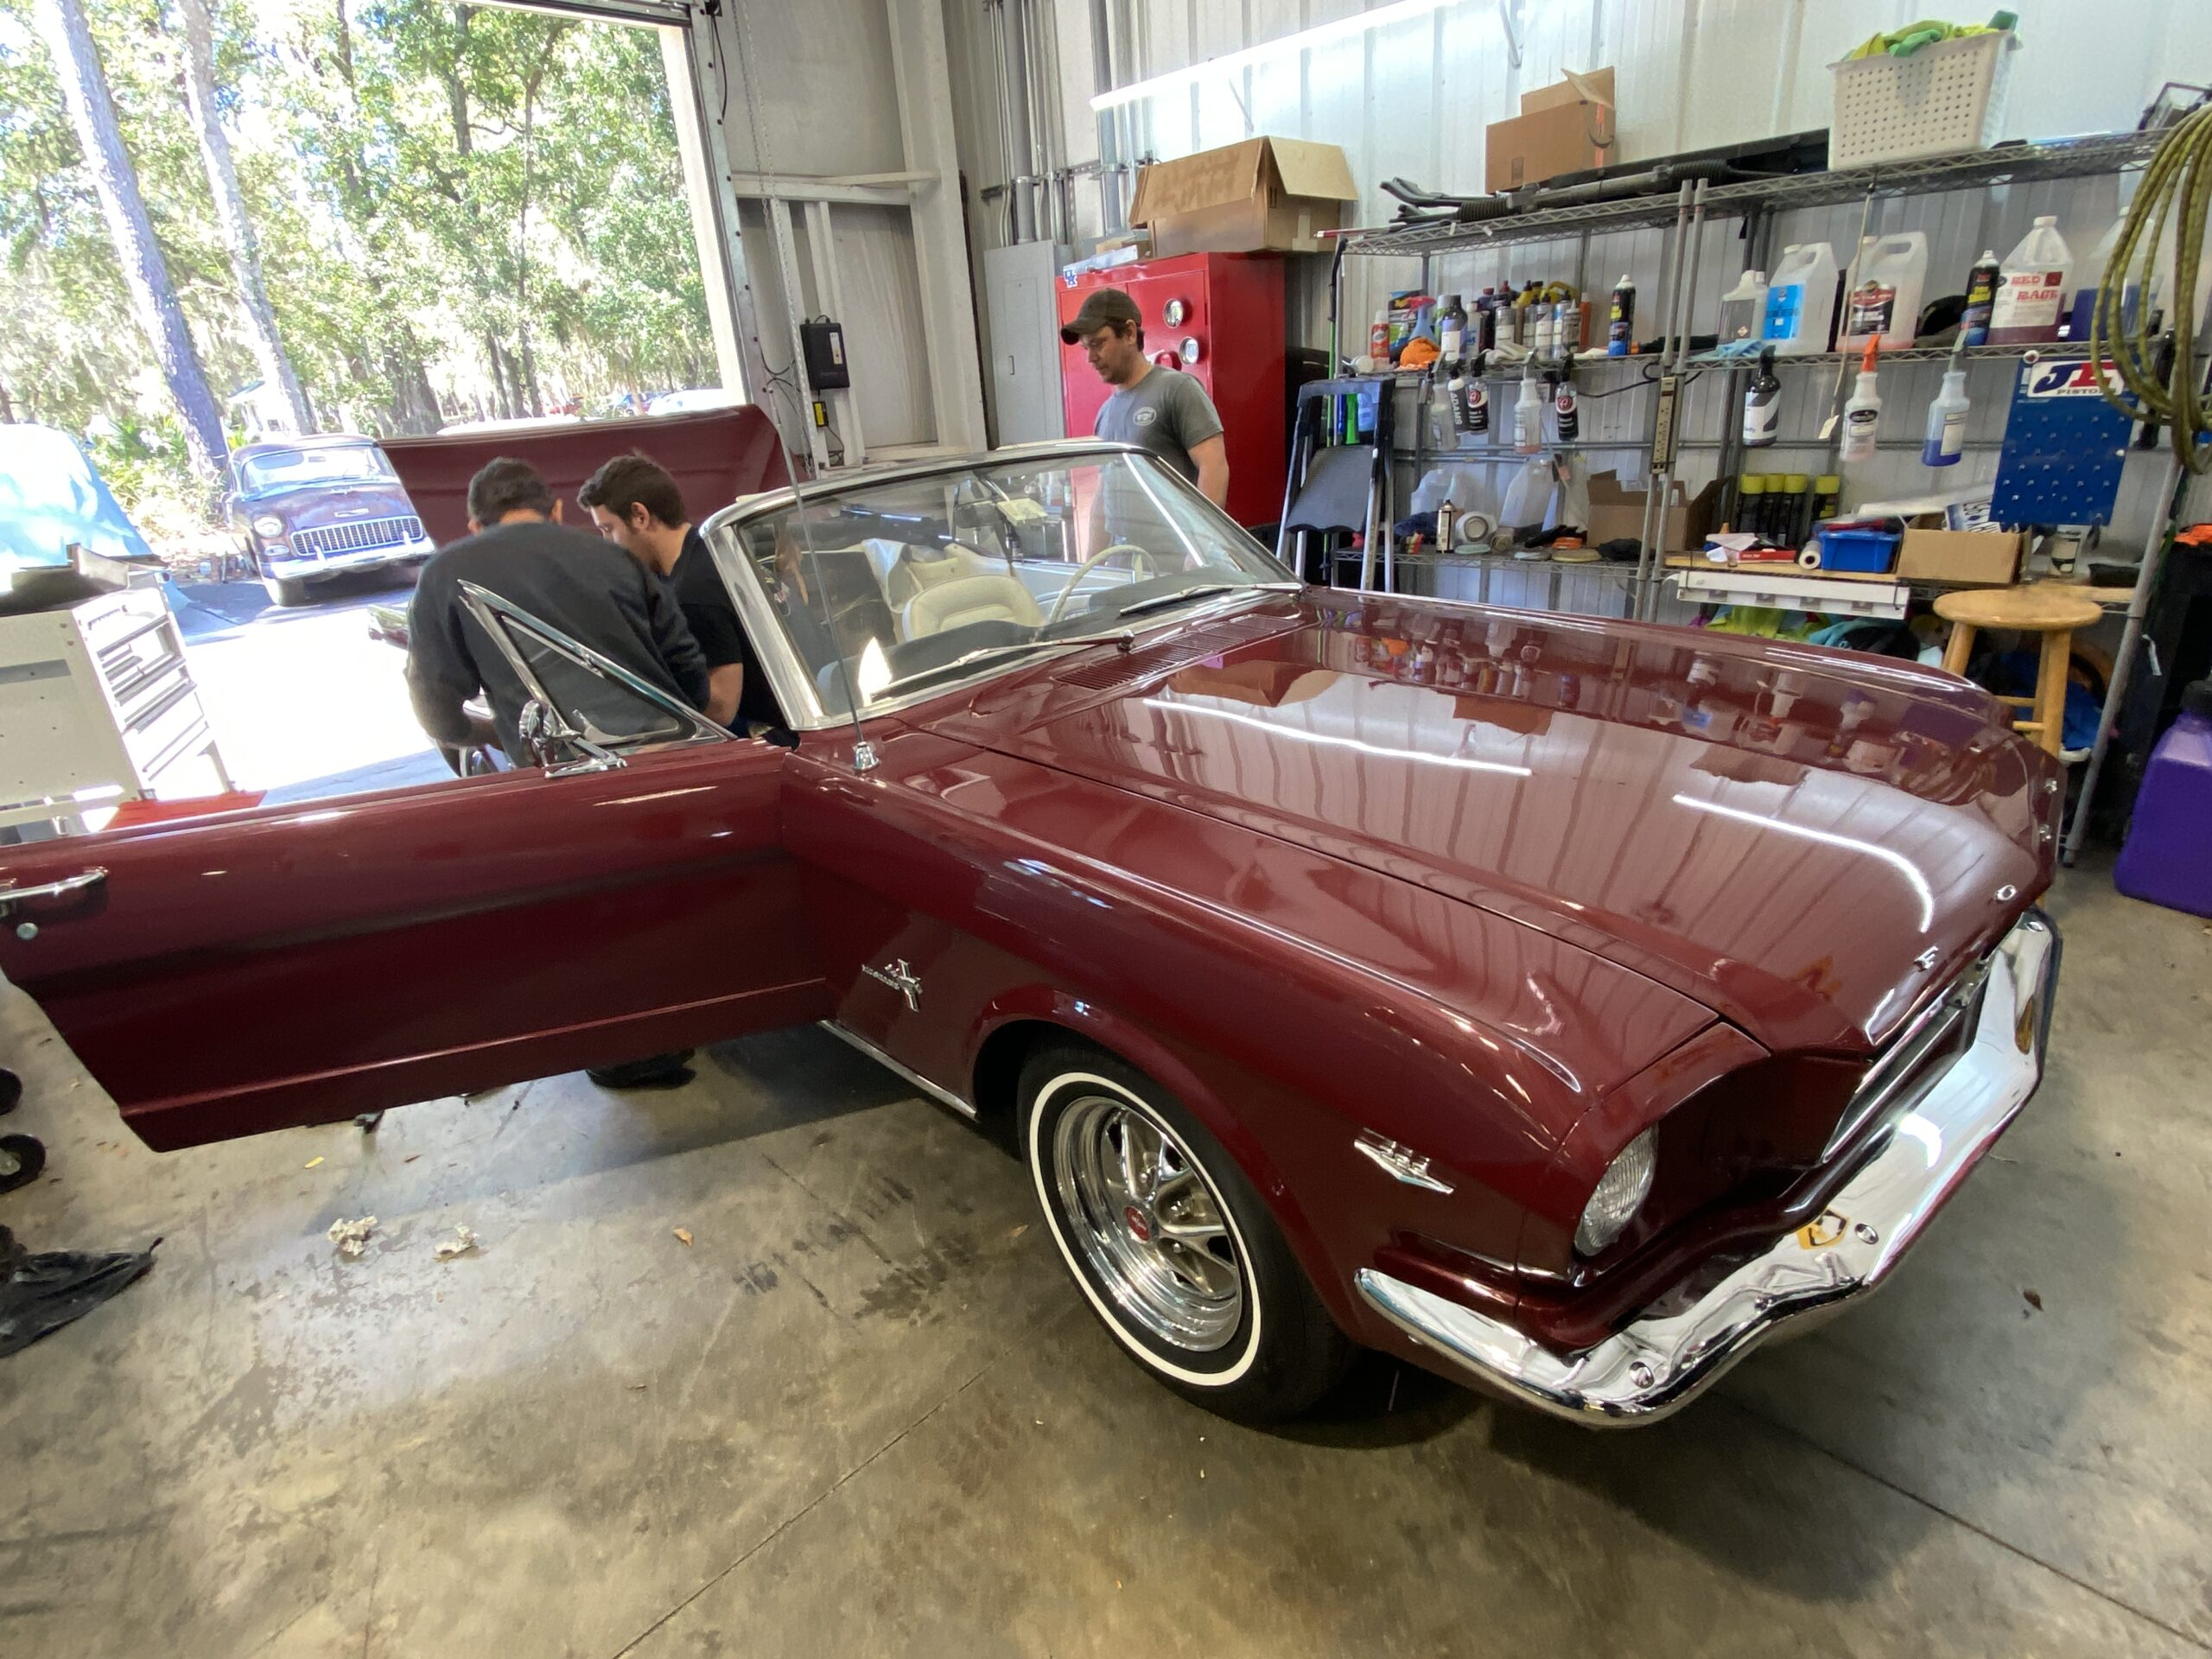 [Gallery] Shop Stop: Land Speed Auto